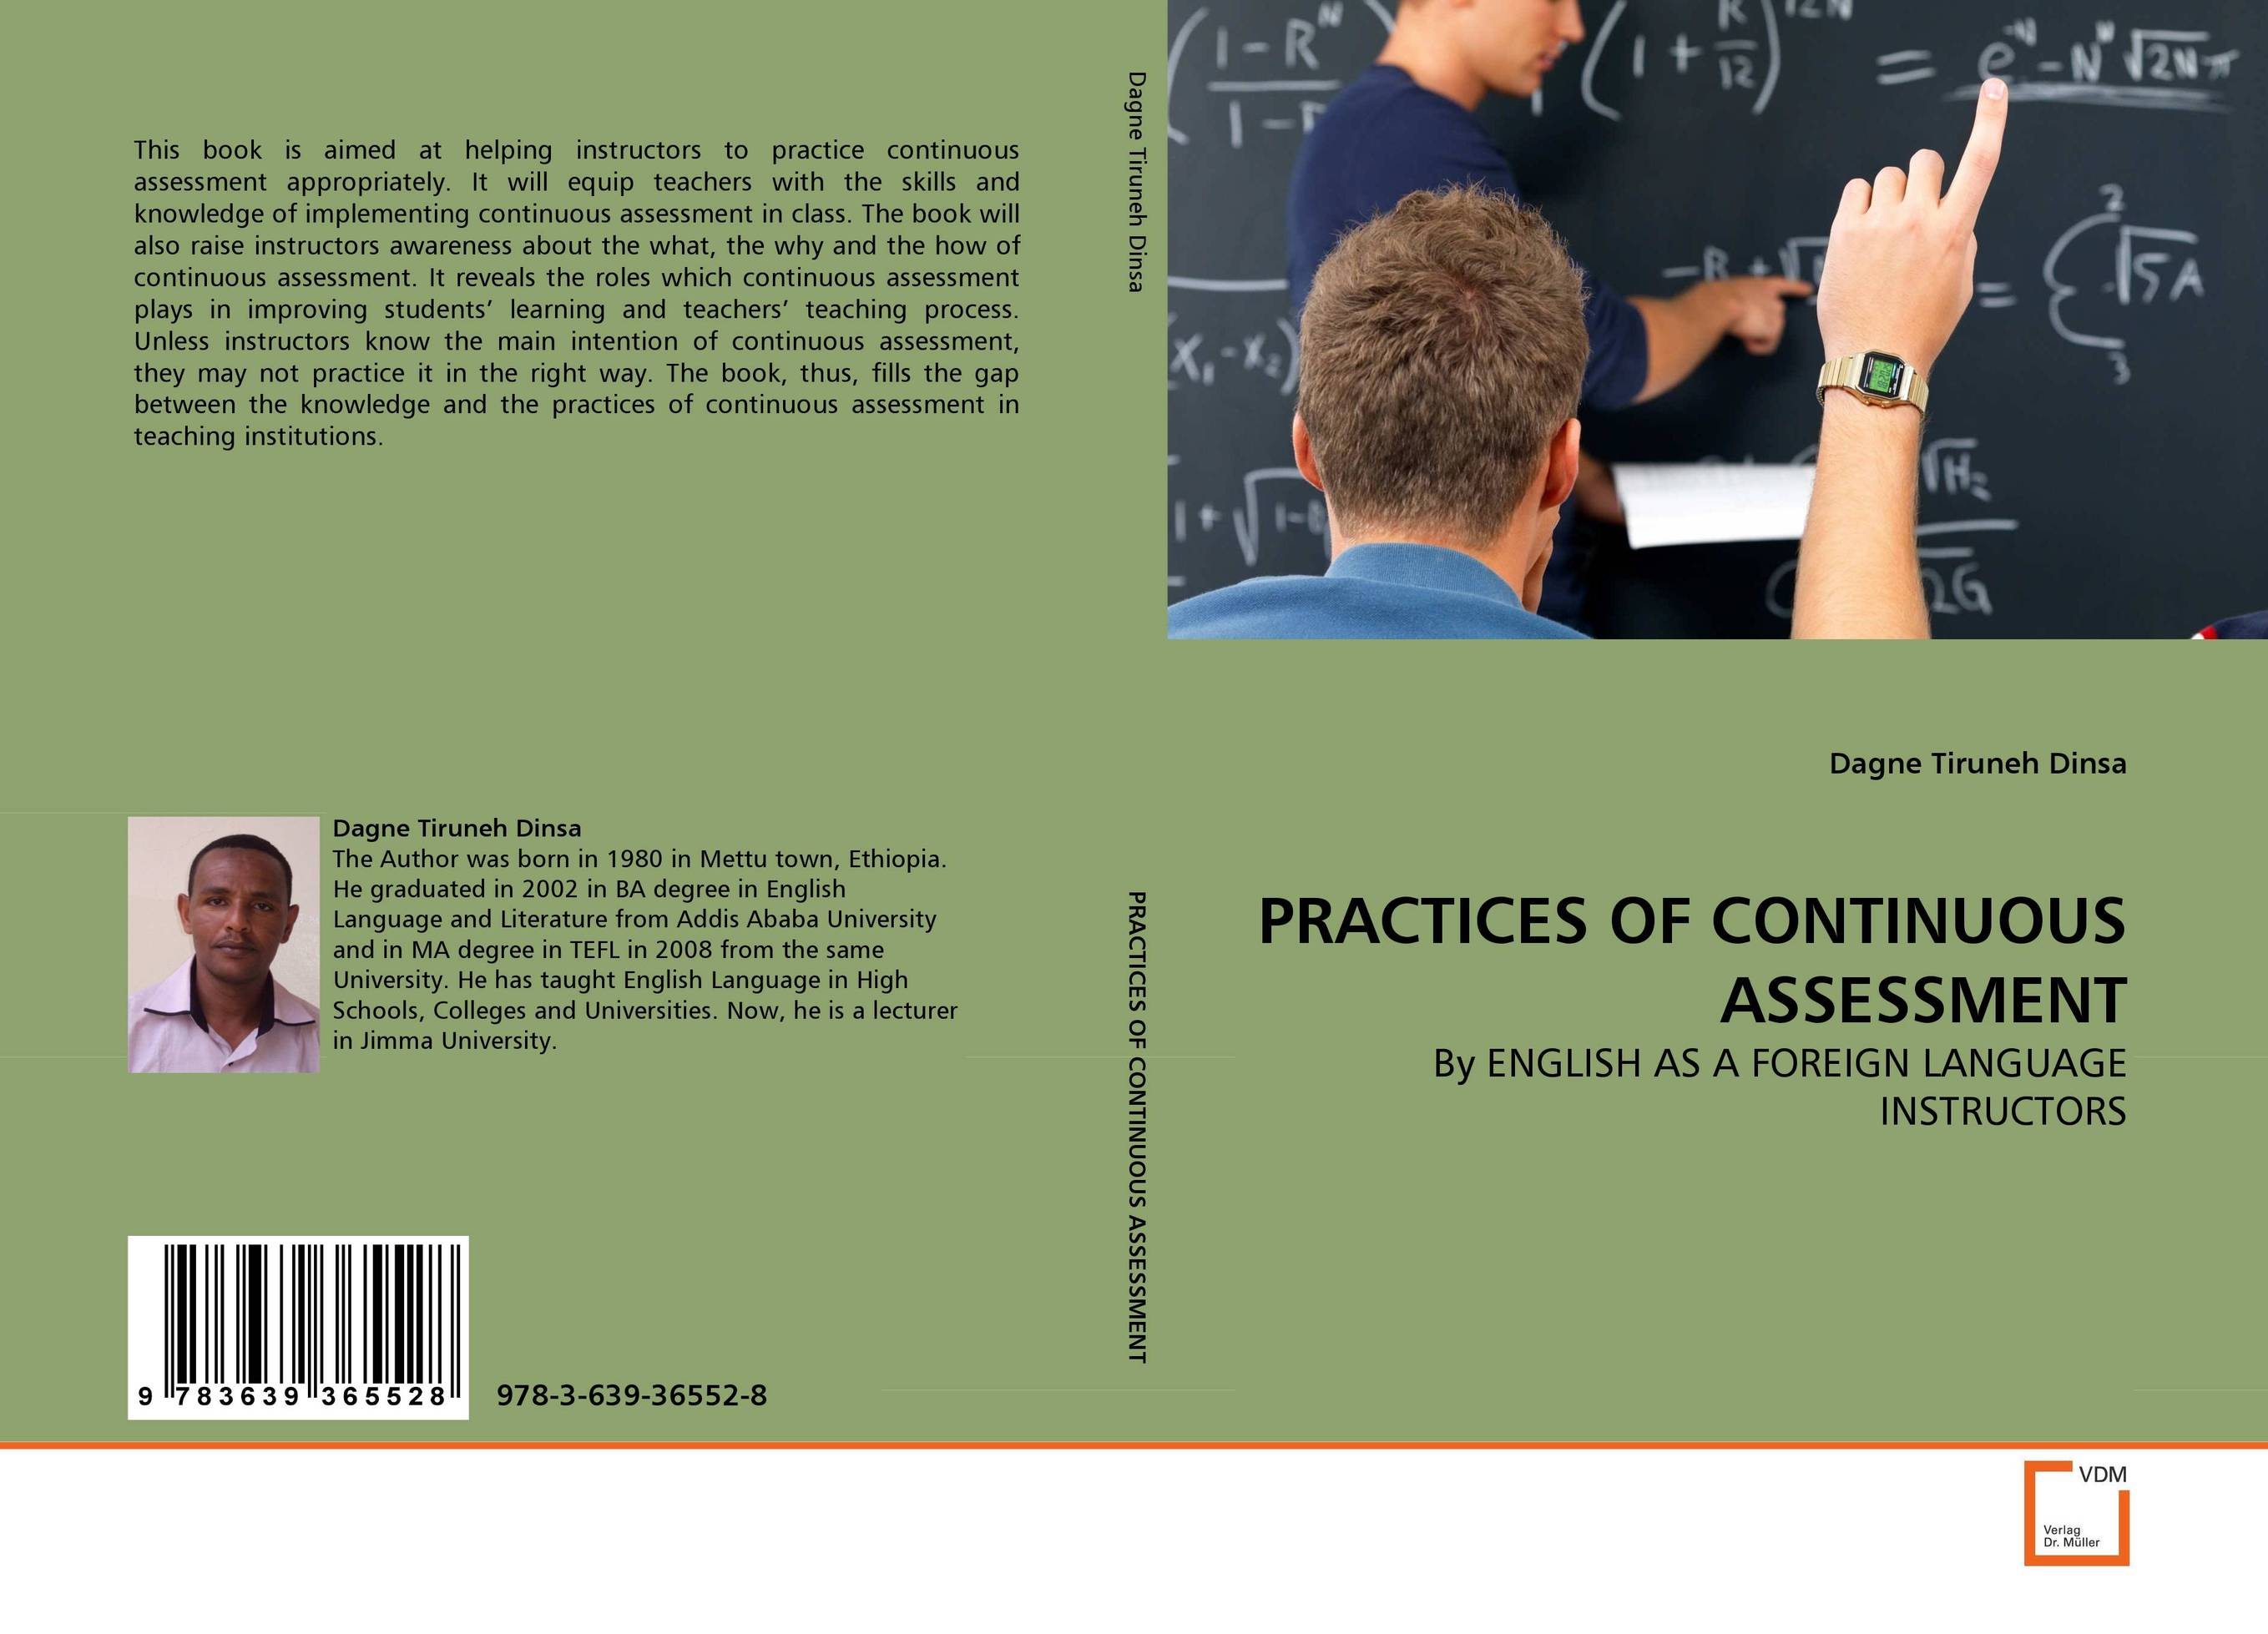 PRACTICES OF CONTINUOUS ASSESSMENT psychiatric interviewing and assessment